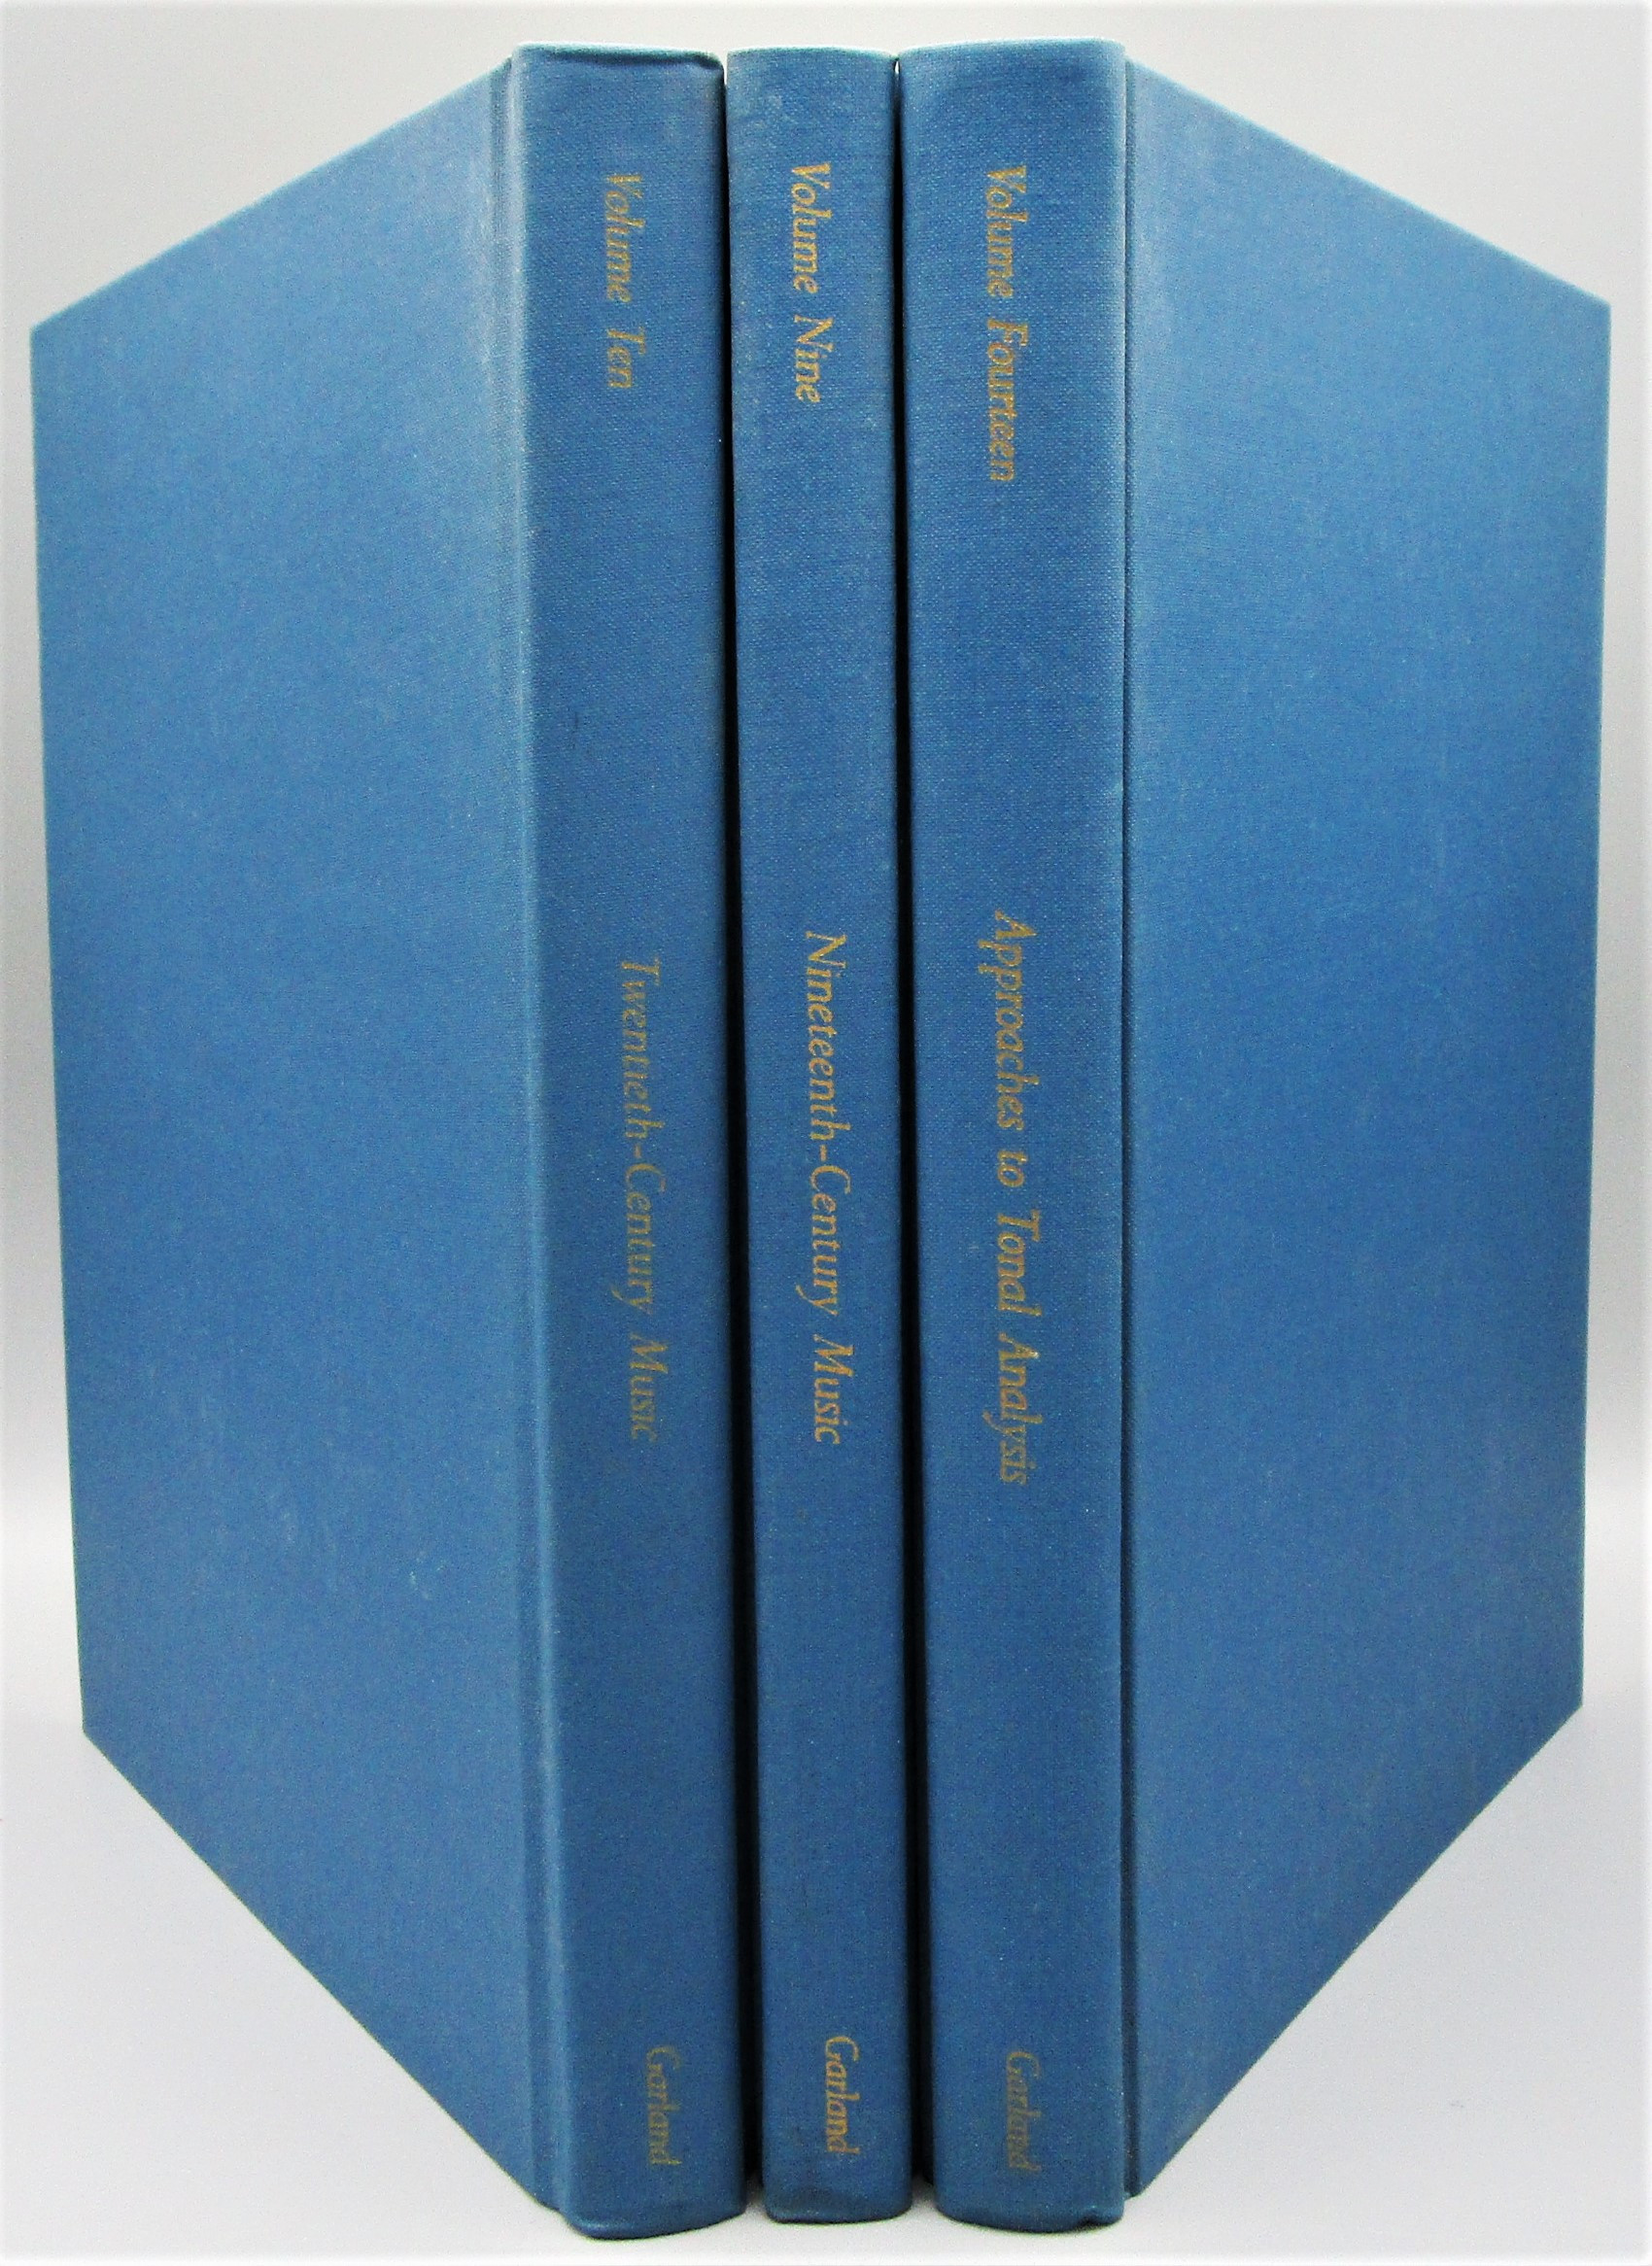 THE GARLAND LIBRARY OF THE HISTORY OF WESTERN MUSIC - 1985 [Vols 9, 10 & 14, 1st Ed]